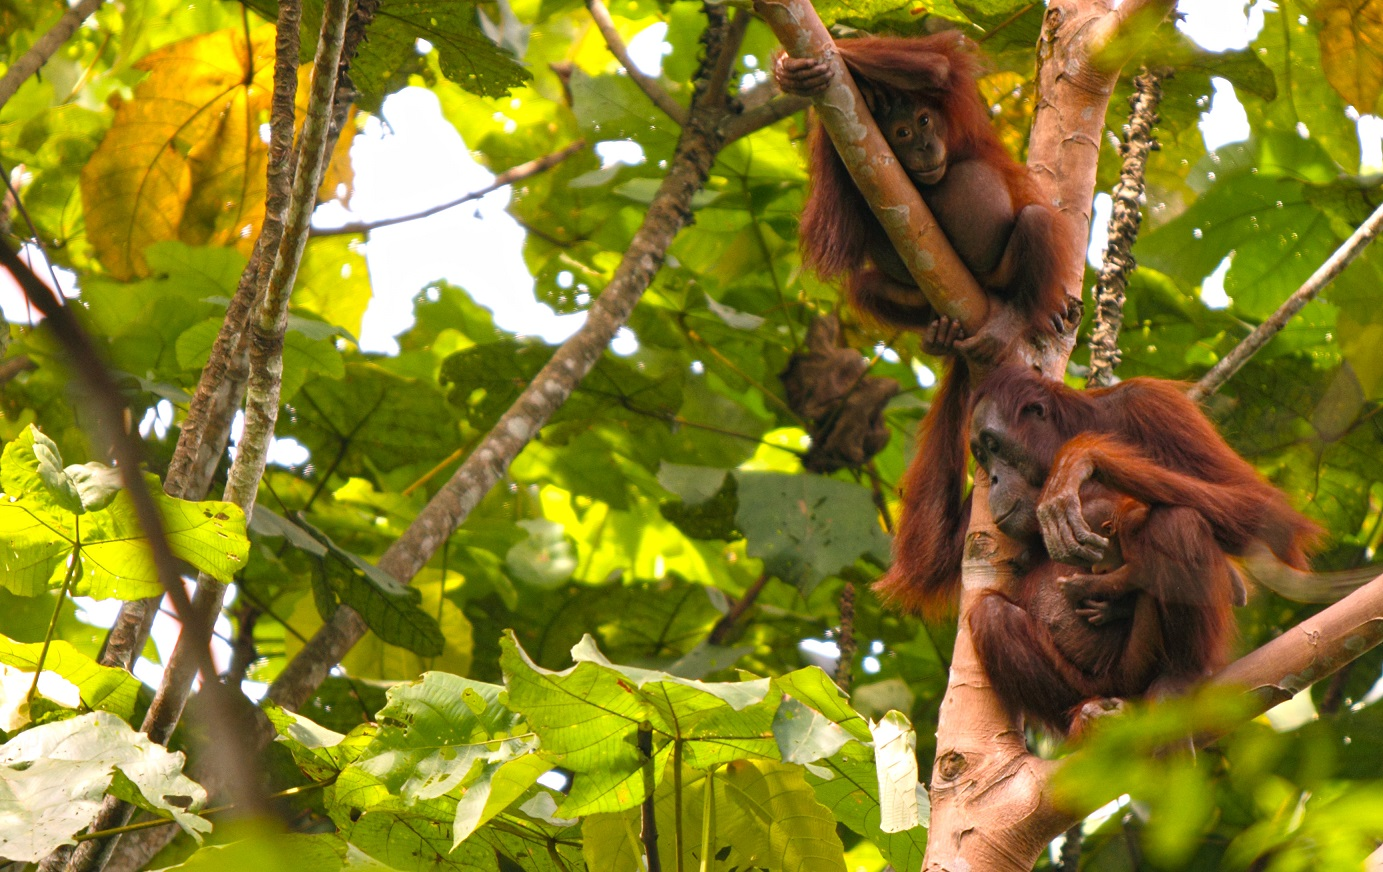 Putri, Pur and a new baby are orangutans in the KNP